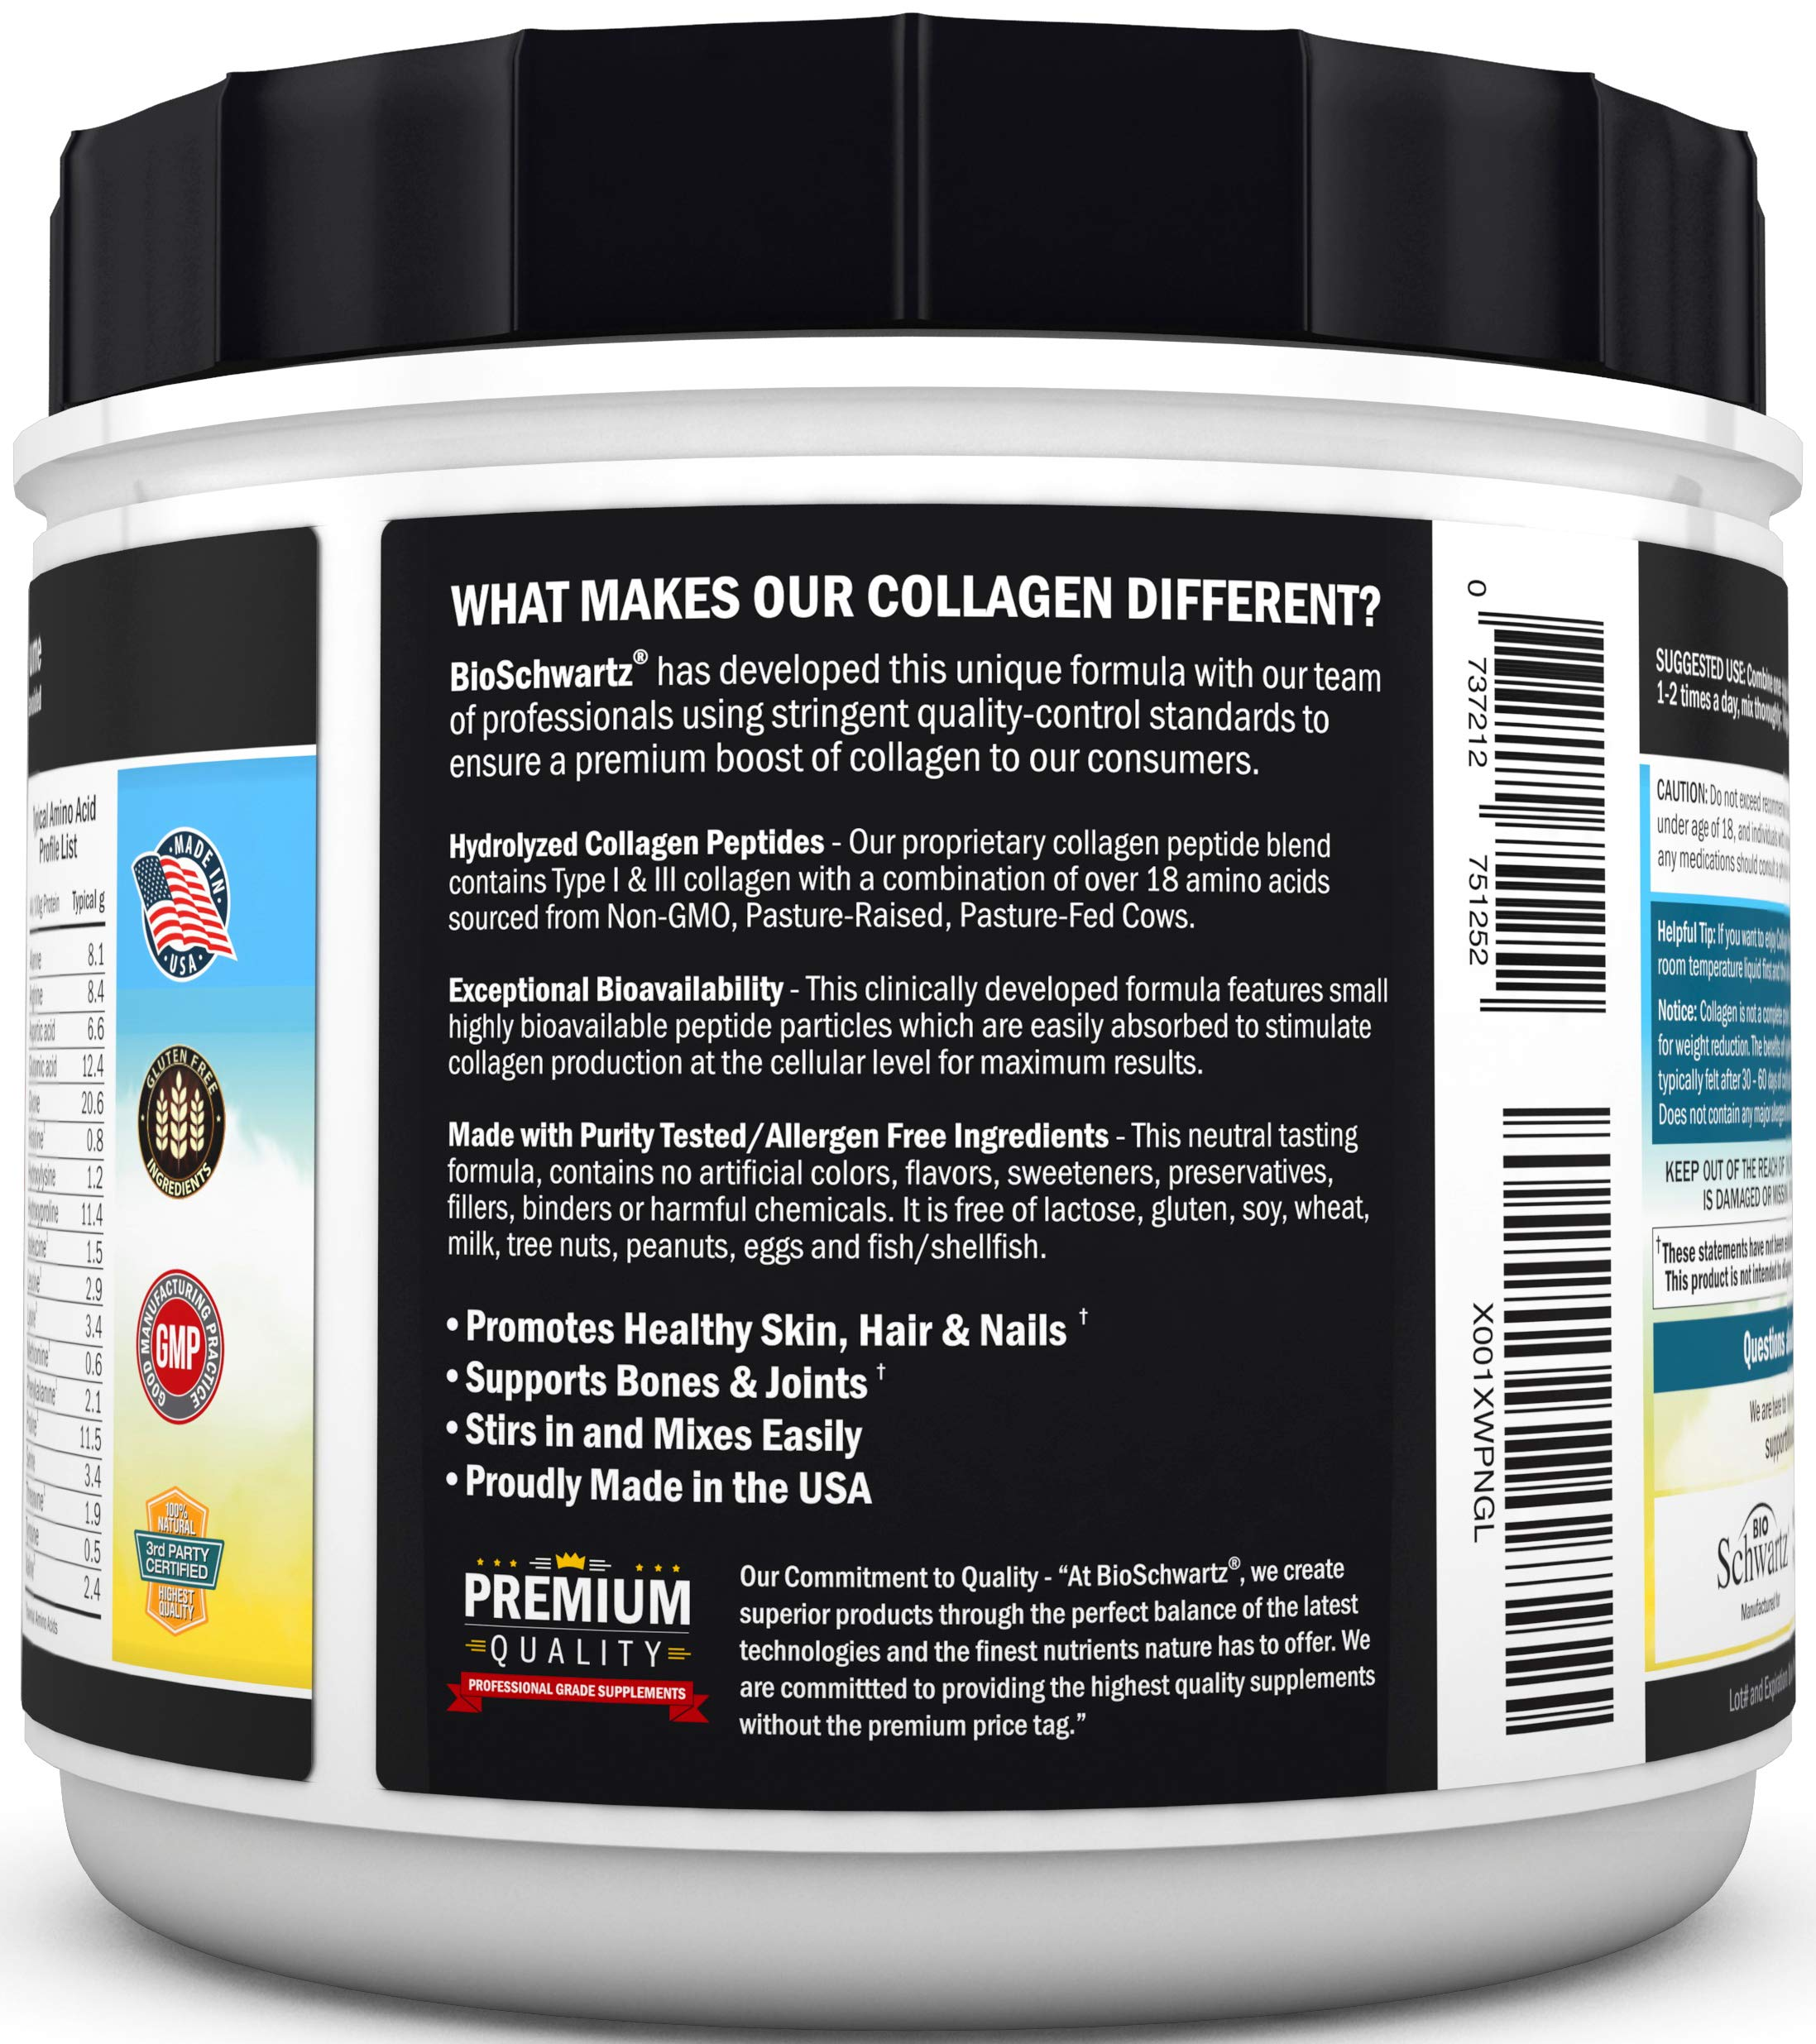 Collagen Peptides Protein Powder - Grass Fed, Pasture Raised with Aminos - Promotes Healthy Skin Hair & Nails - Bone & Joint Support - Hydrolyzed, Unflavored, Non GMO, Gluten Free - Easy to Mix -16 oz by BioSchwartz (Image #4)